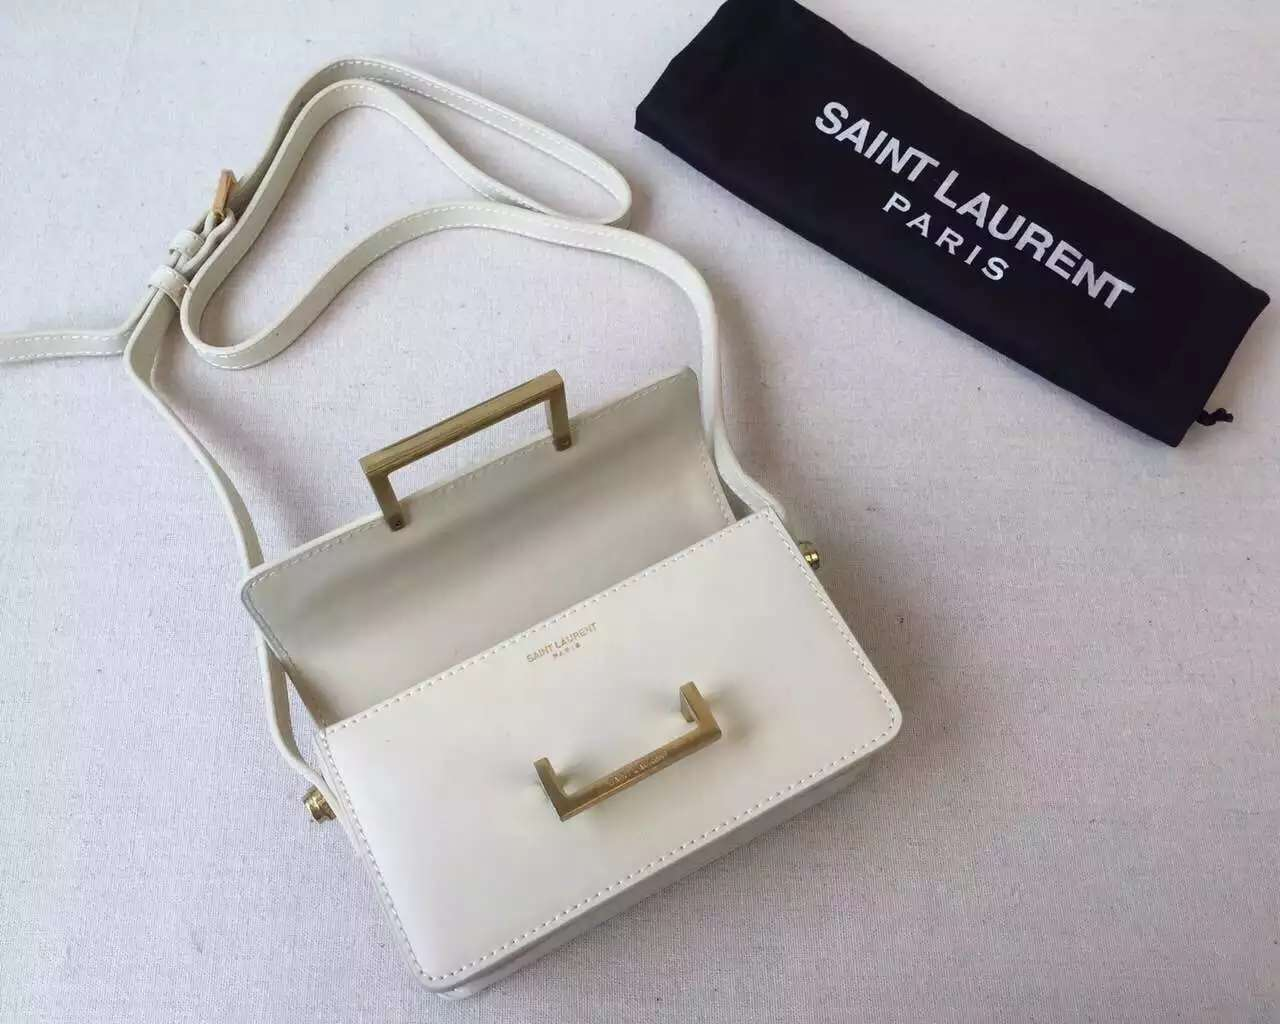 2015 Cheap YSL Out-Sale with Free Shipping-Saint Laurent Classic Small Lulu Leather Bag in white Calfskin Leather